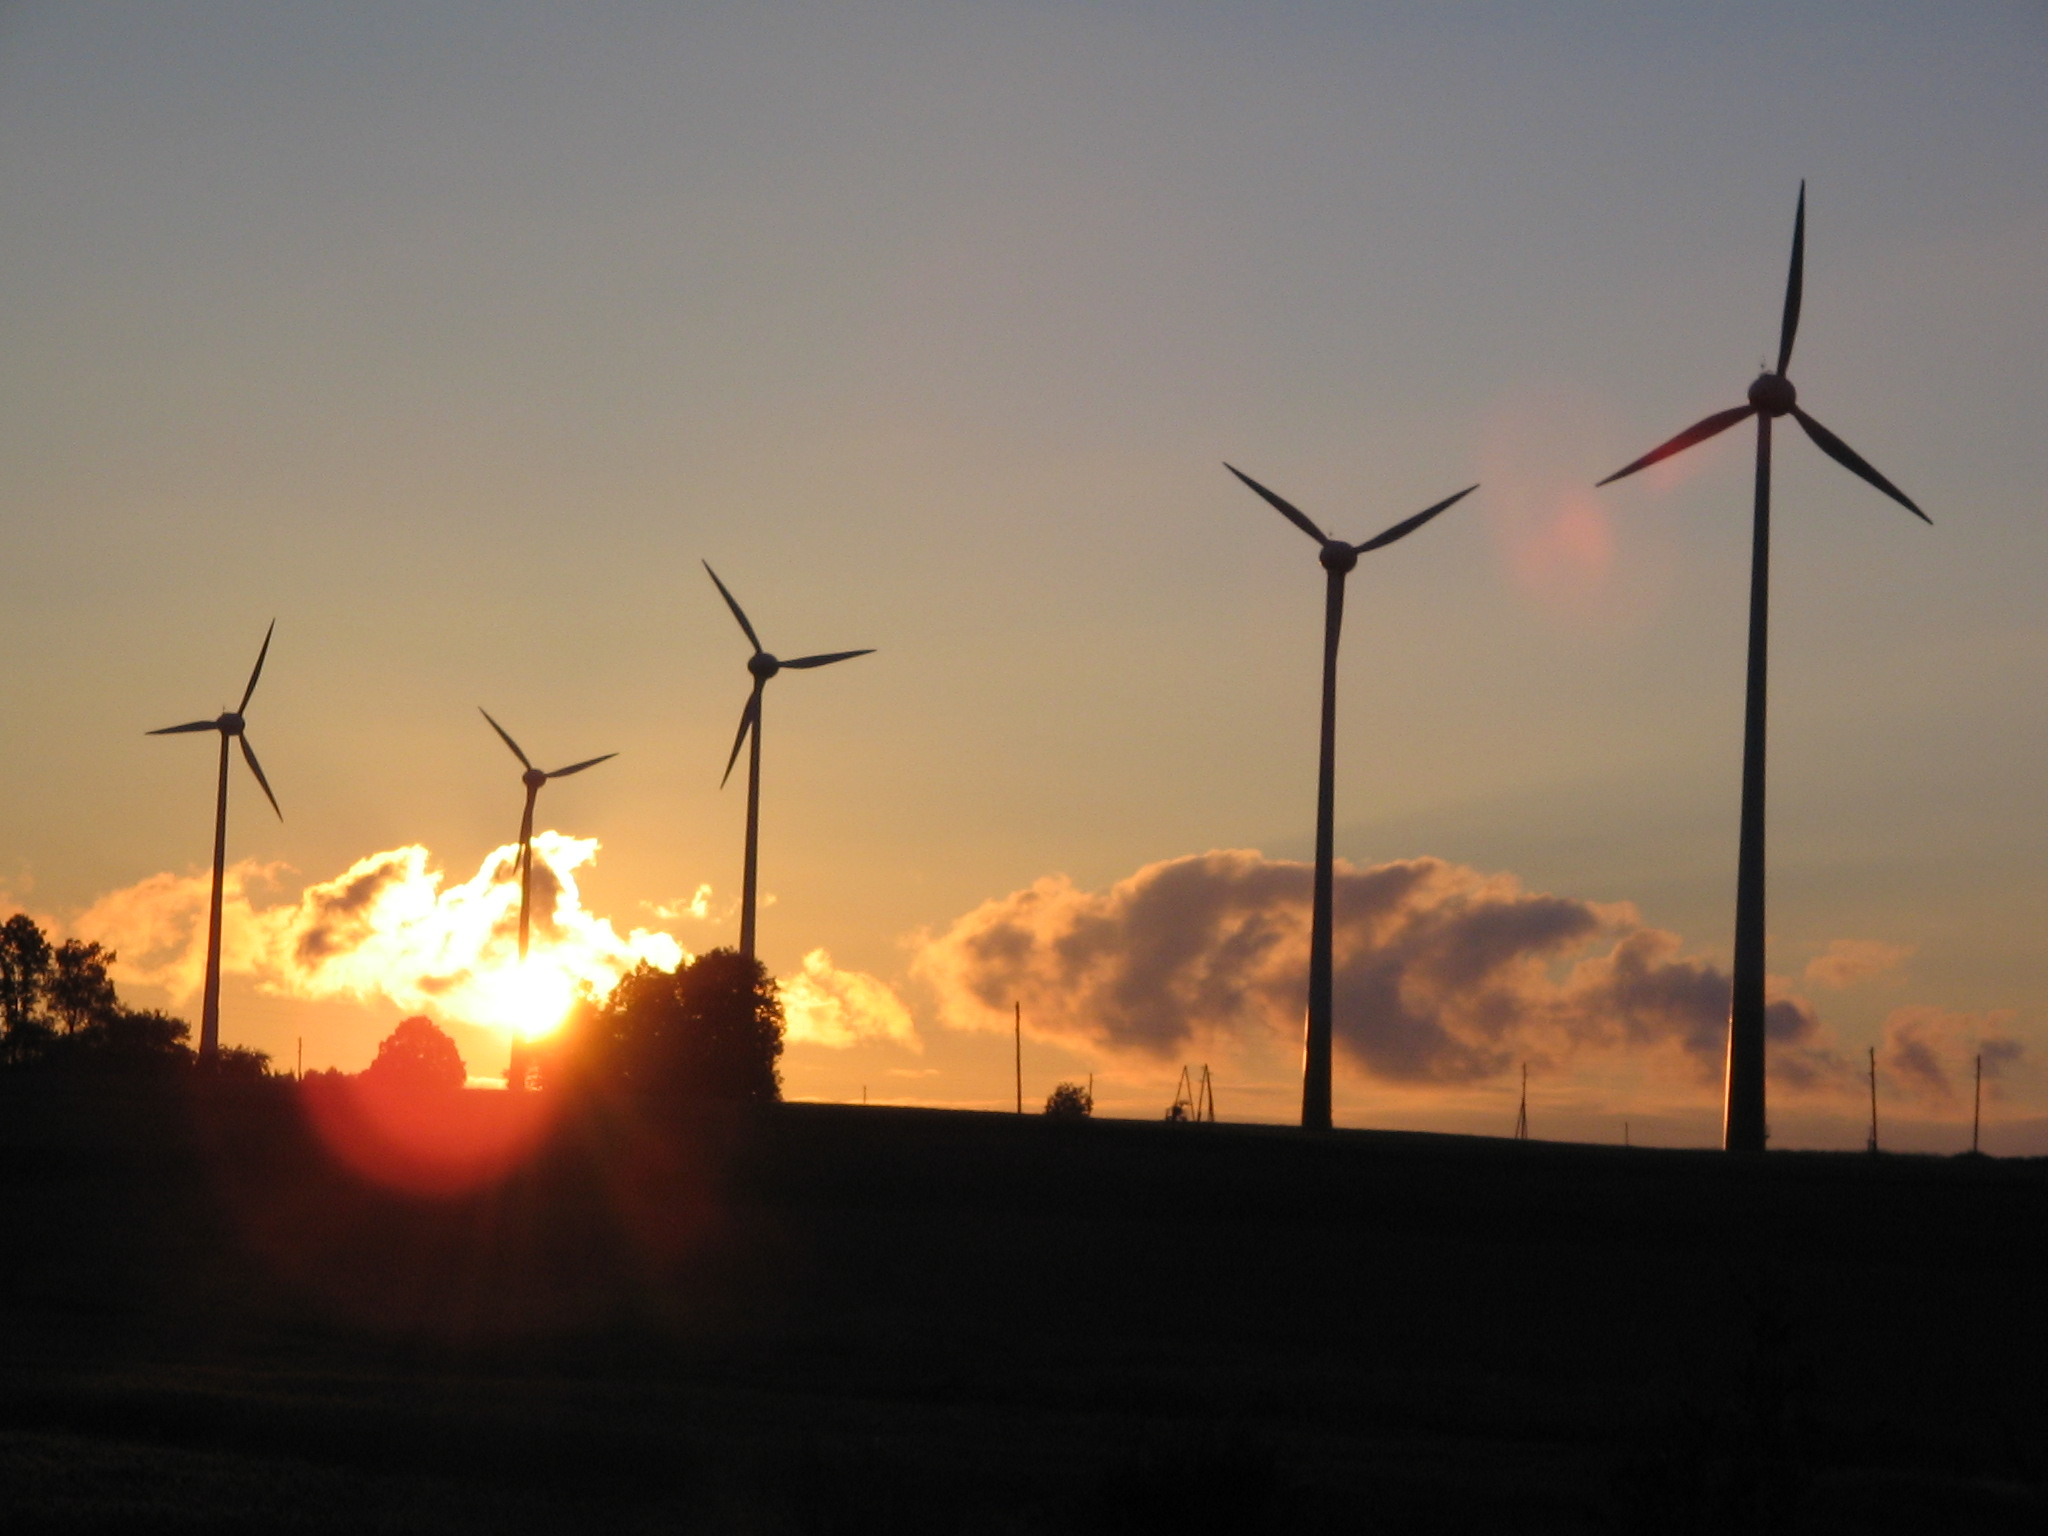 File:Modern windmills at sunset.jpg